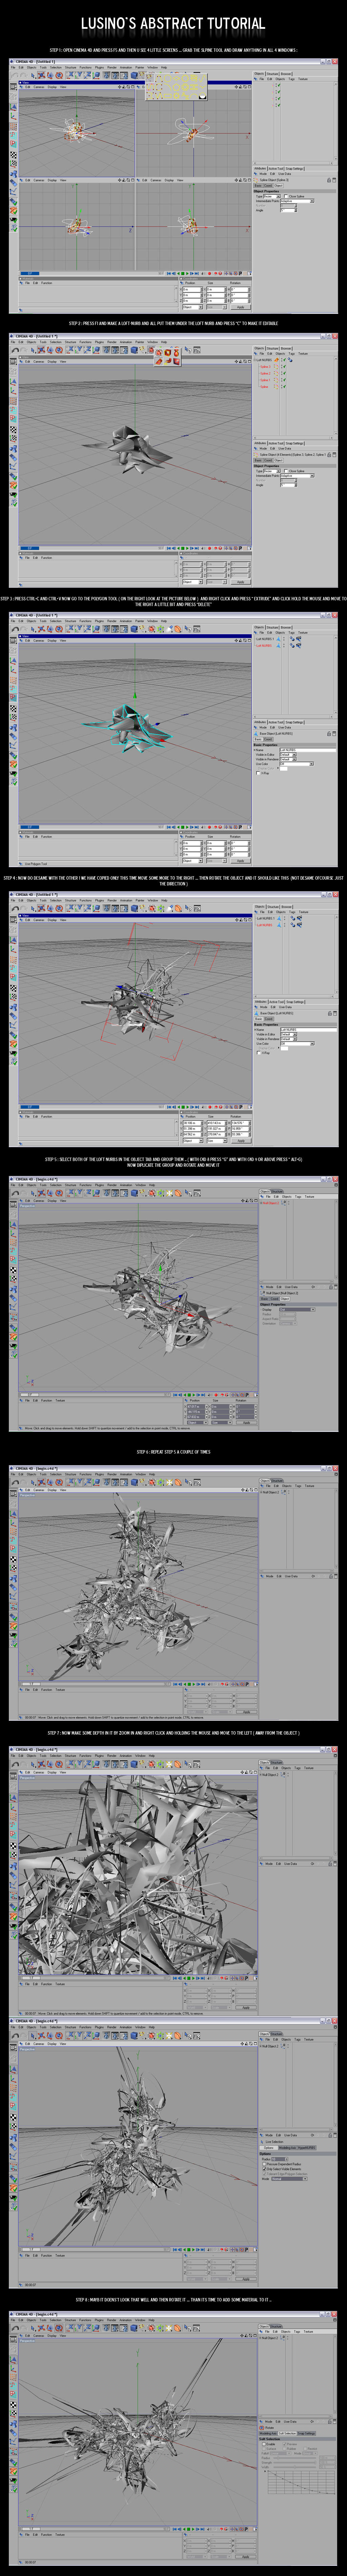 Lusino's C4D tutorial Part 1 by Lusino